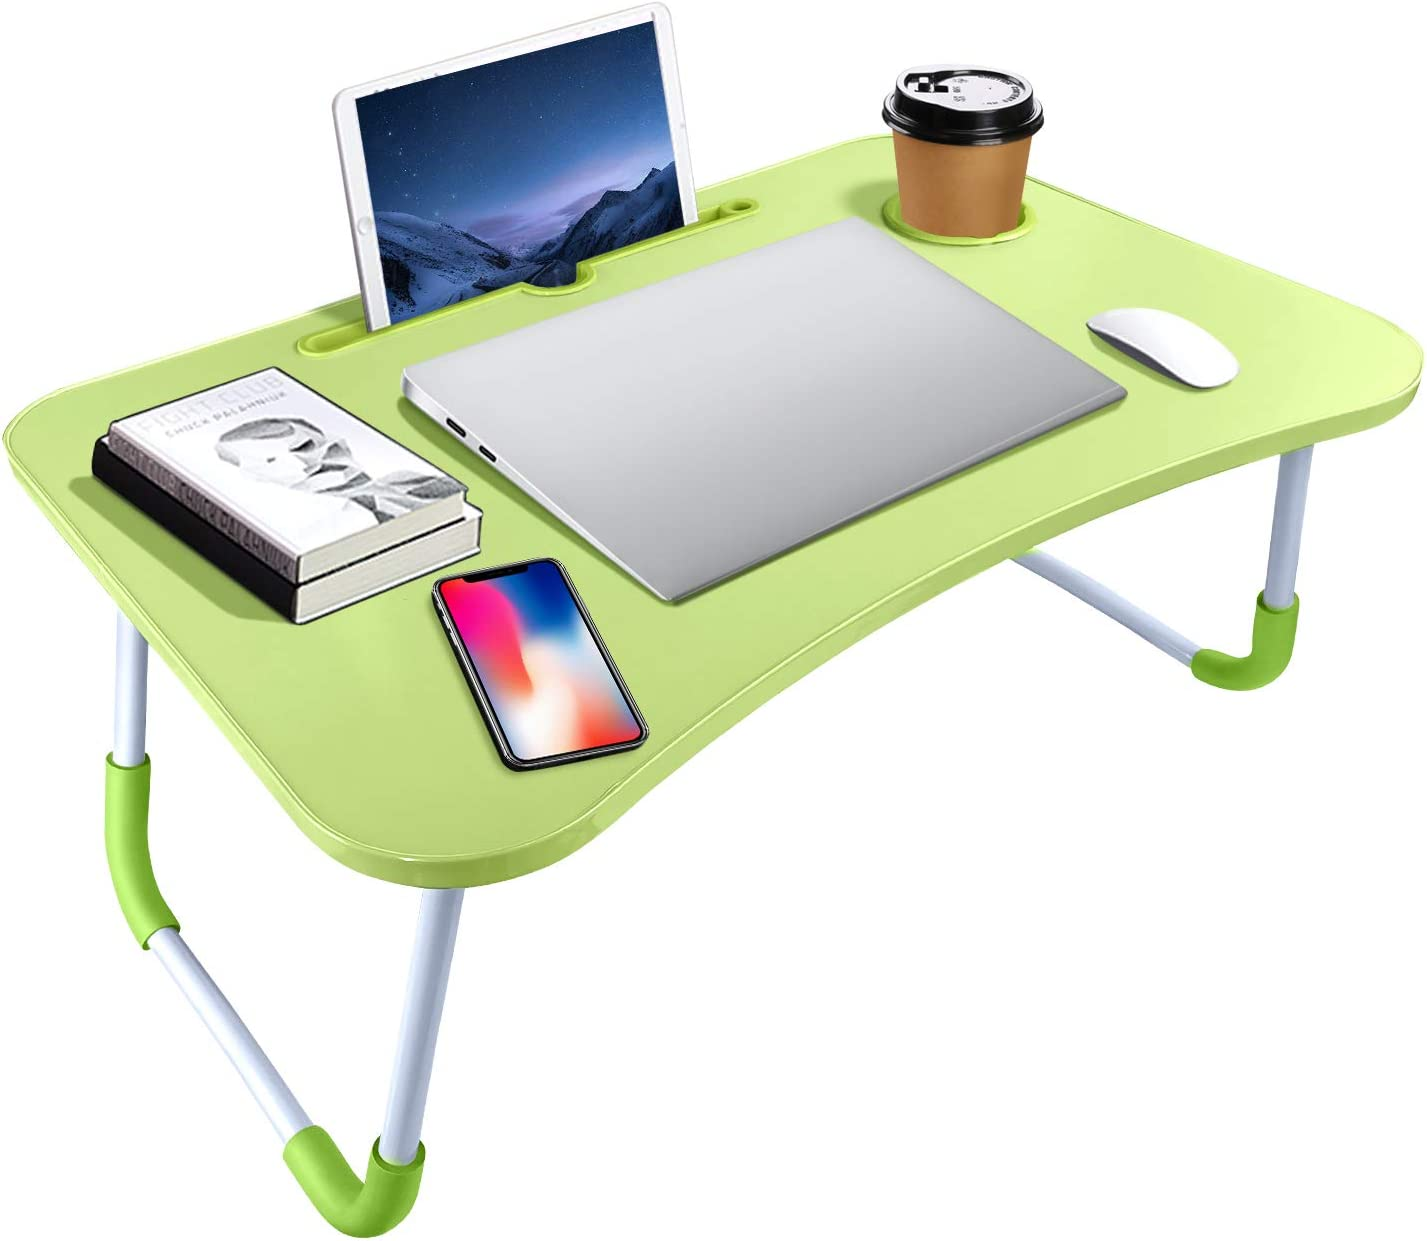 KPX Portable Laptop Bed Table, Fordable Lap Desk with Cup Slot & Notebook Stand Breakfast Bed Trays for Eating and Laptops Book Holder Lap Desk for Floor,Couch, Sofa, Bed, Terrace, Balcony (Green)